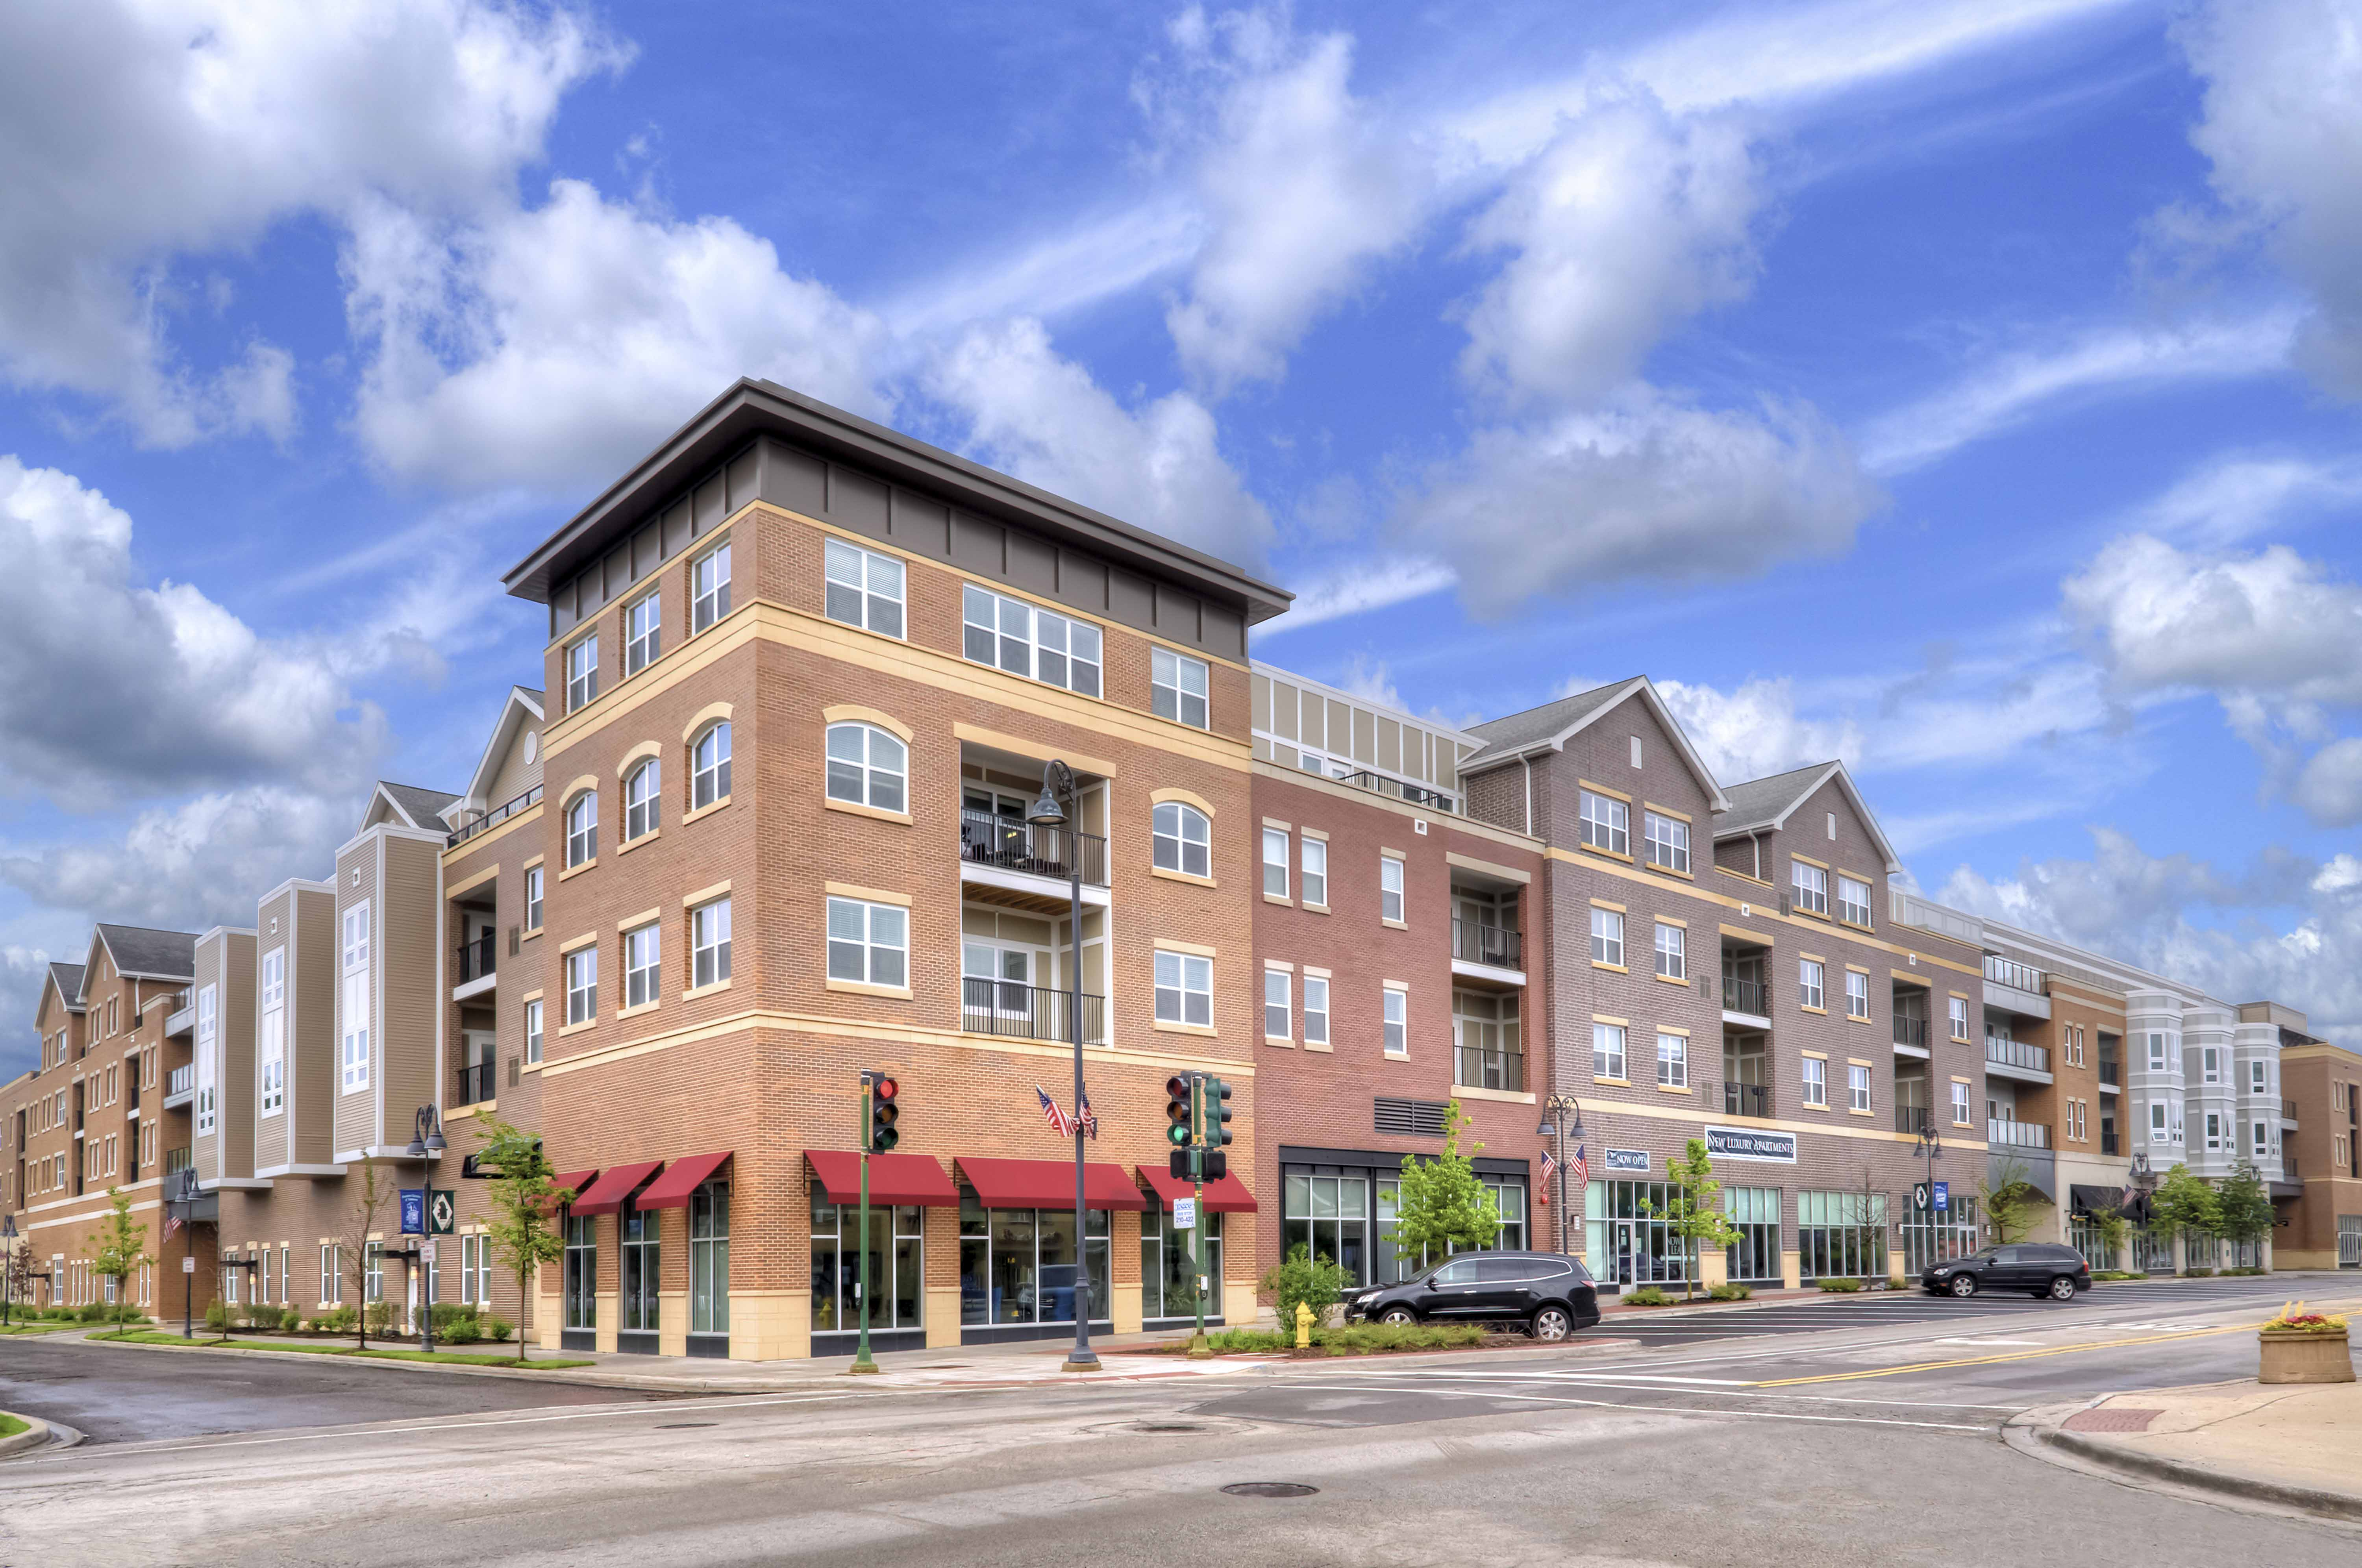 Leasing Strong at Glenview's Midtown Square